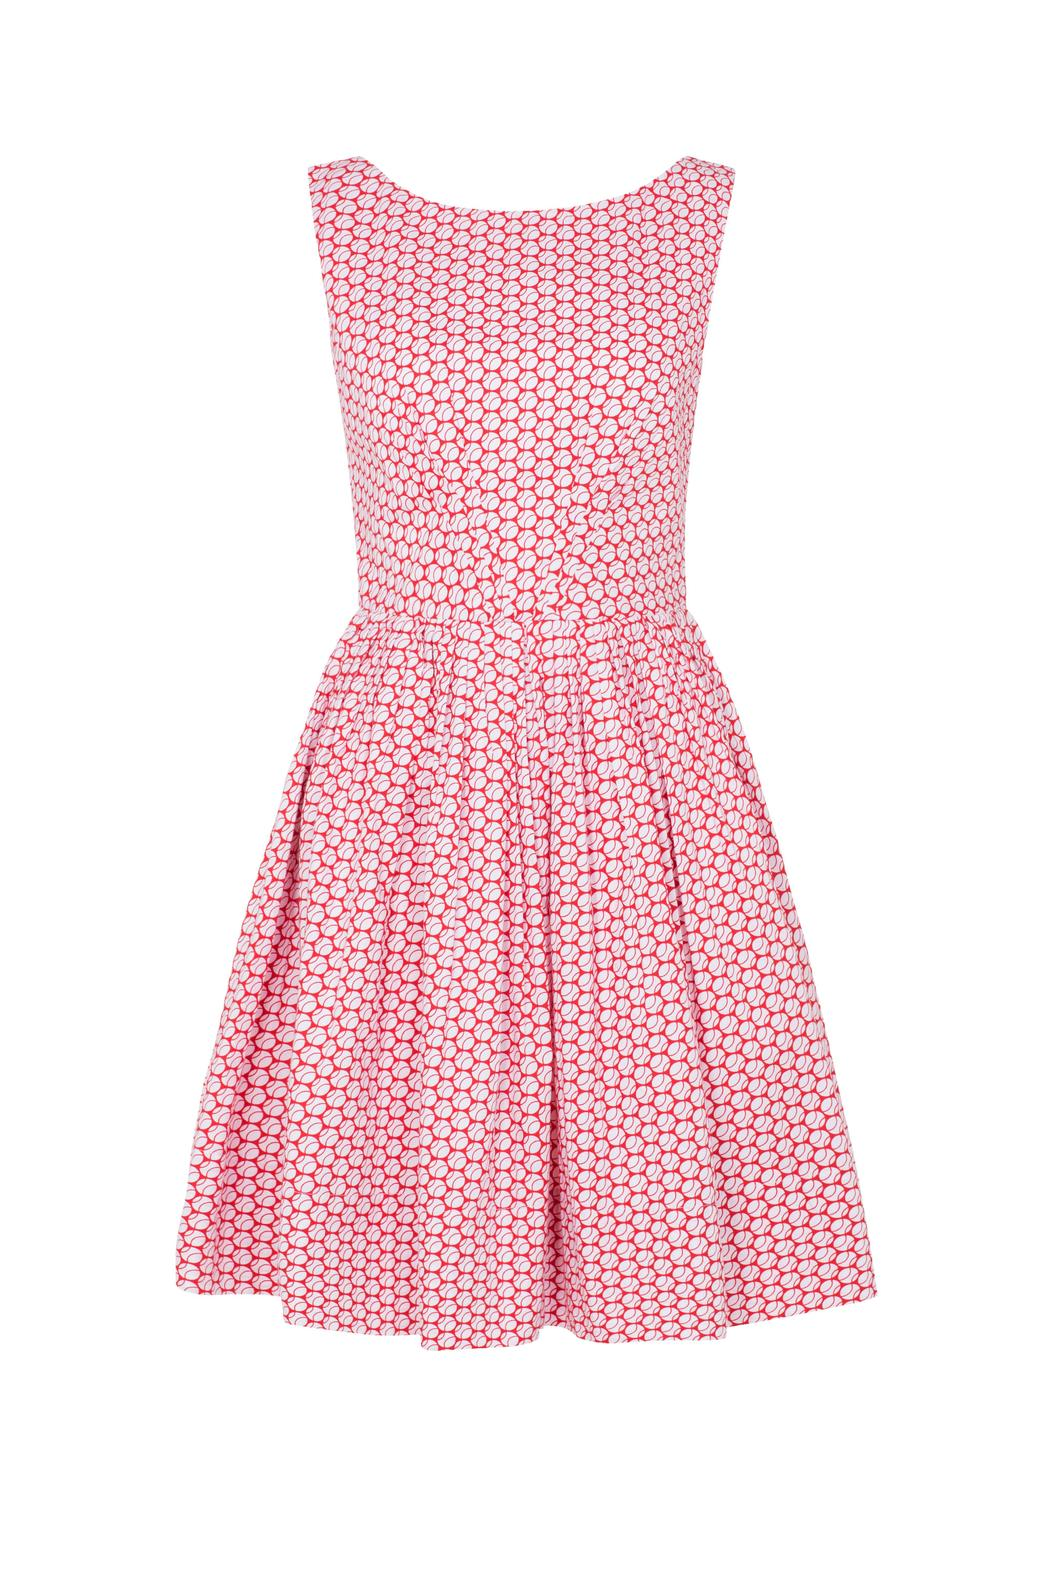 Emily & Fin Baseball Polkadot Dress - Main Image